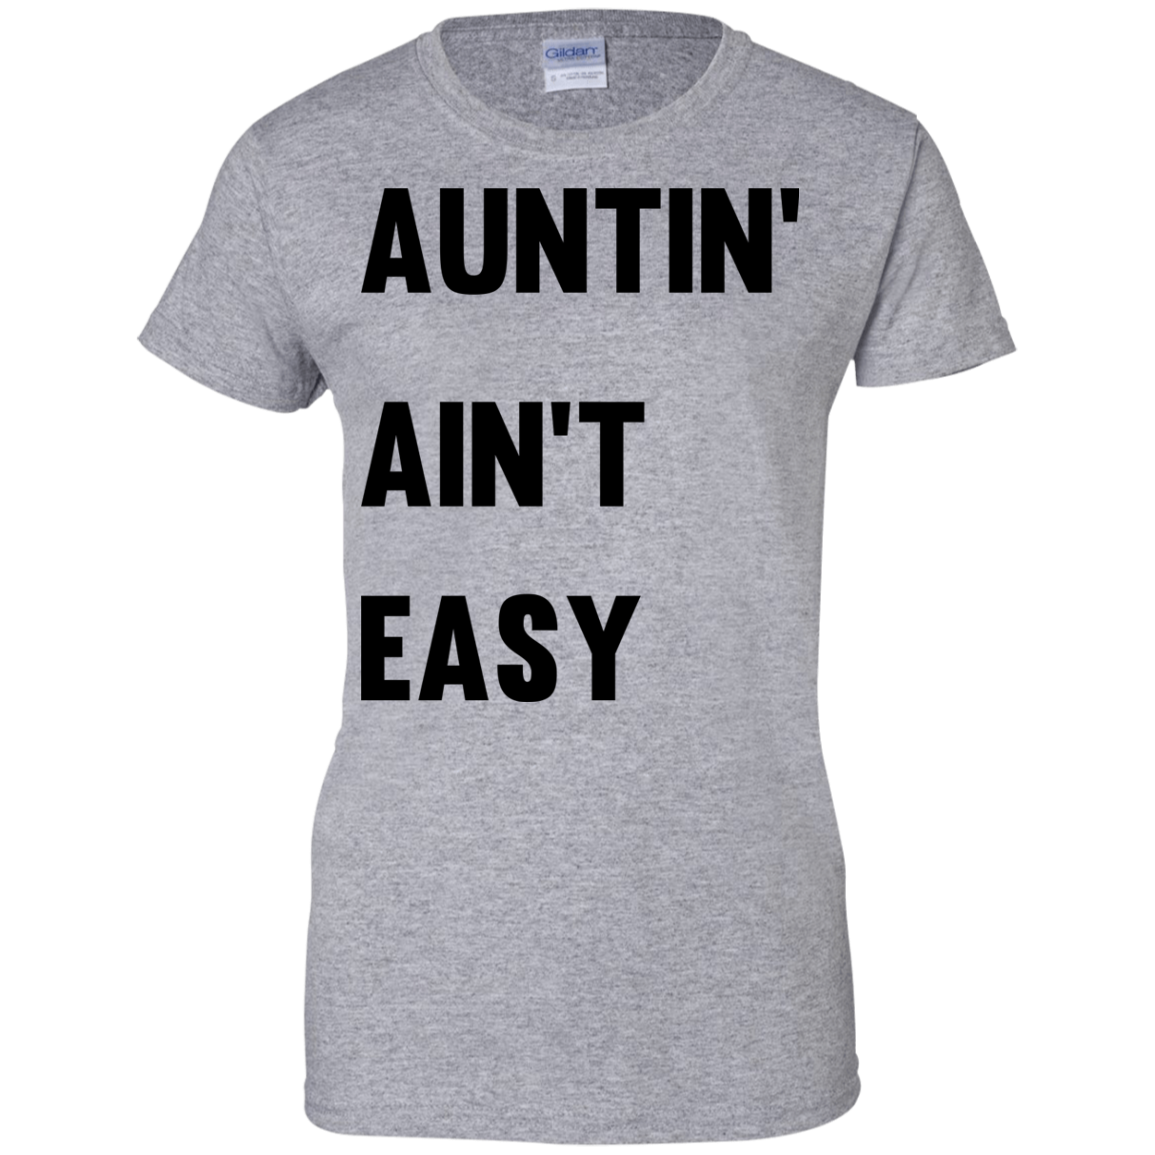 image 212px Aunt Shirt: Auntin' Ain't Easy T Shirts, Hoodies, Long Sleeves